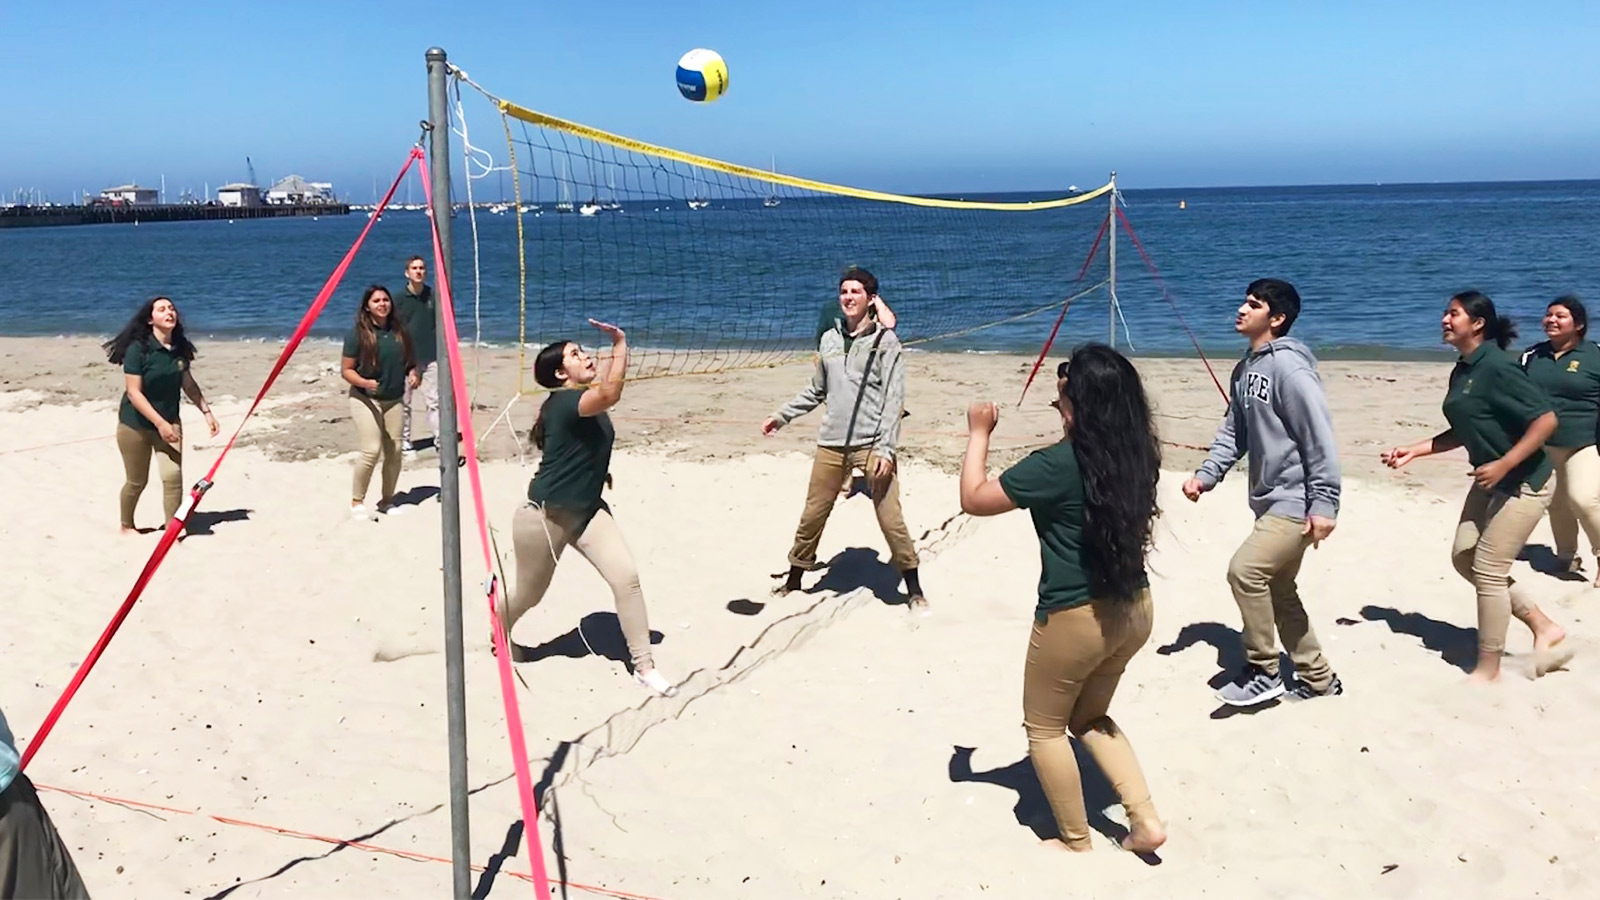 Play beach side volleyball with your team